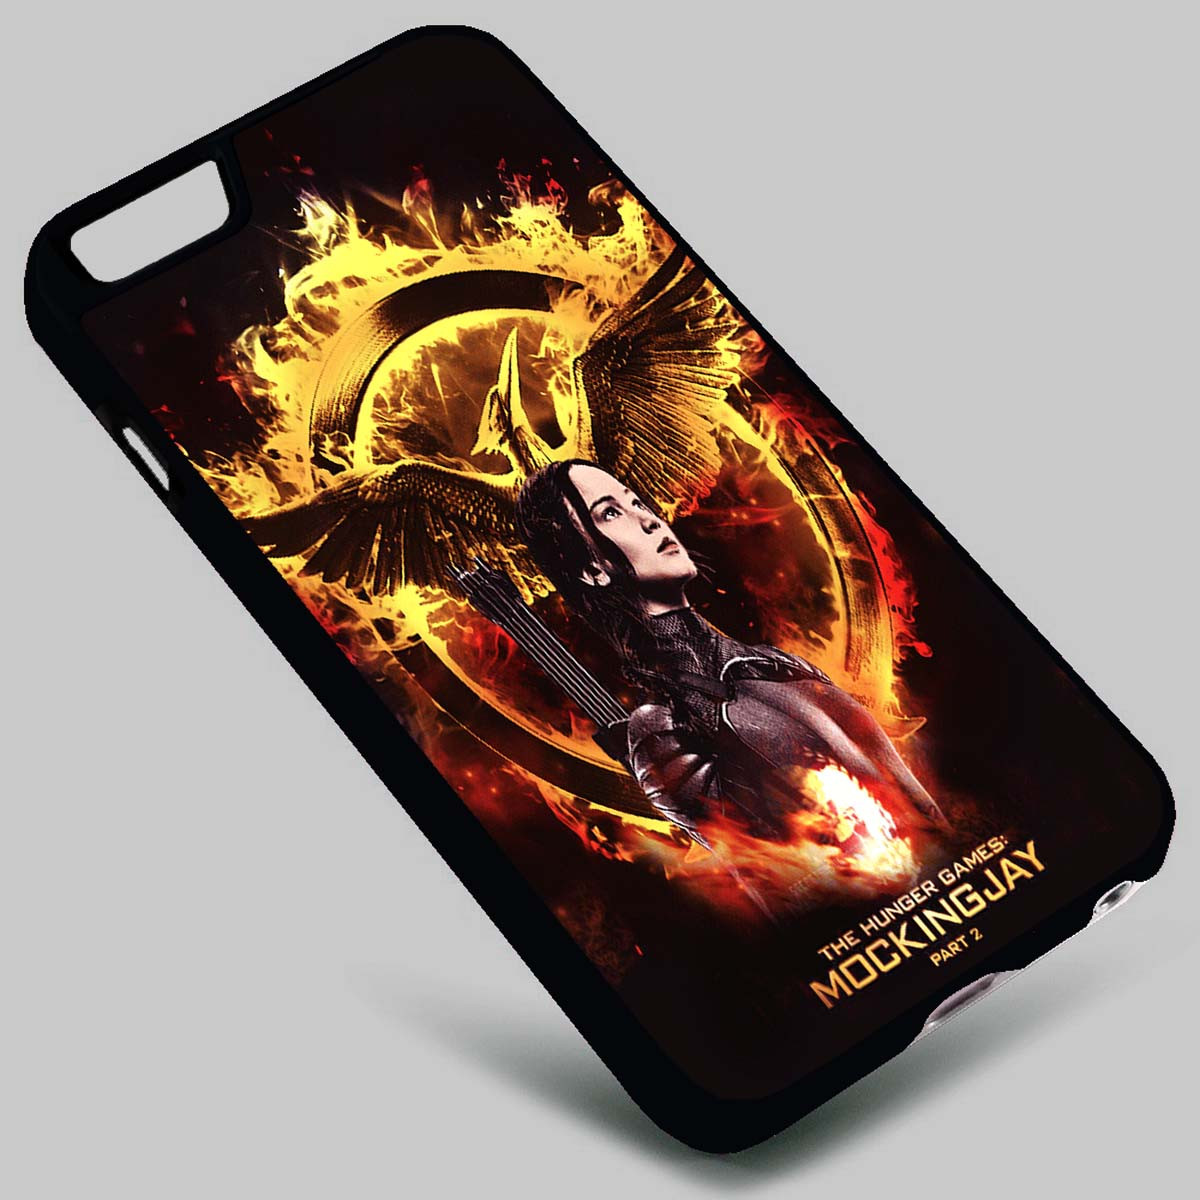 buy online 32917 7df4c The Hunger Games Mockingjay Katniss Everdeen on your case iphone 4 4s 5 5s  5c 6 6plus 7 Samsung Galaxy s3 s4 s5 s6 s7 HTC Case